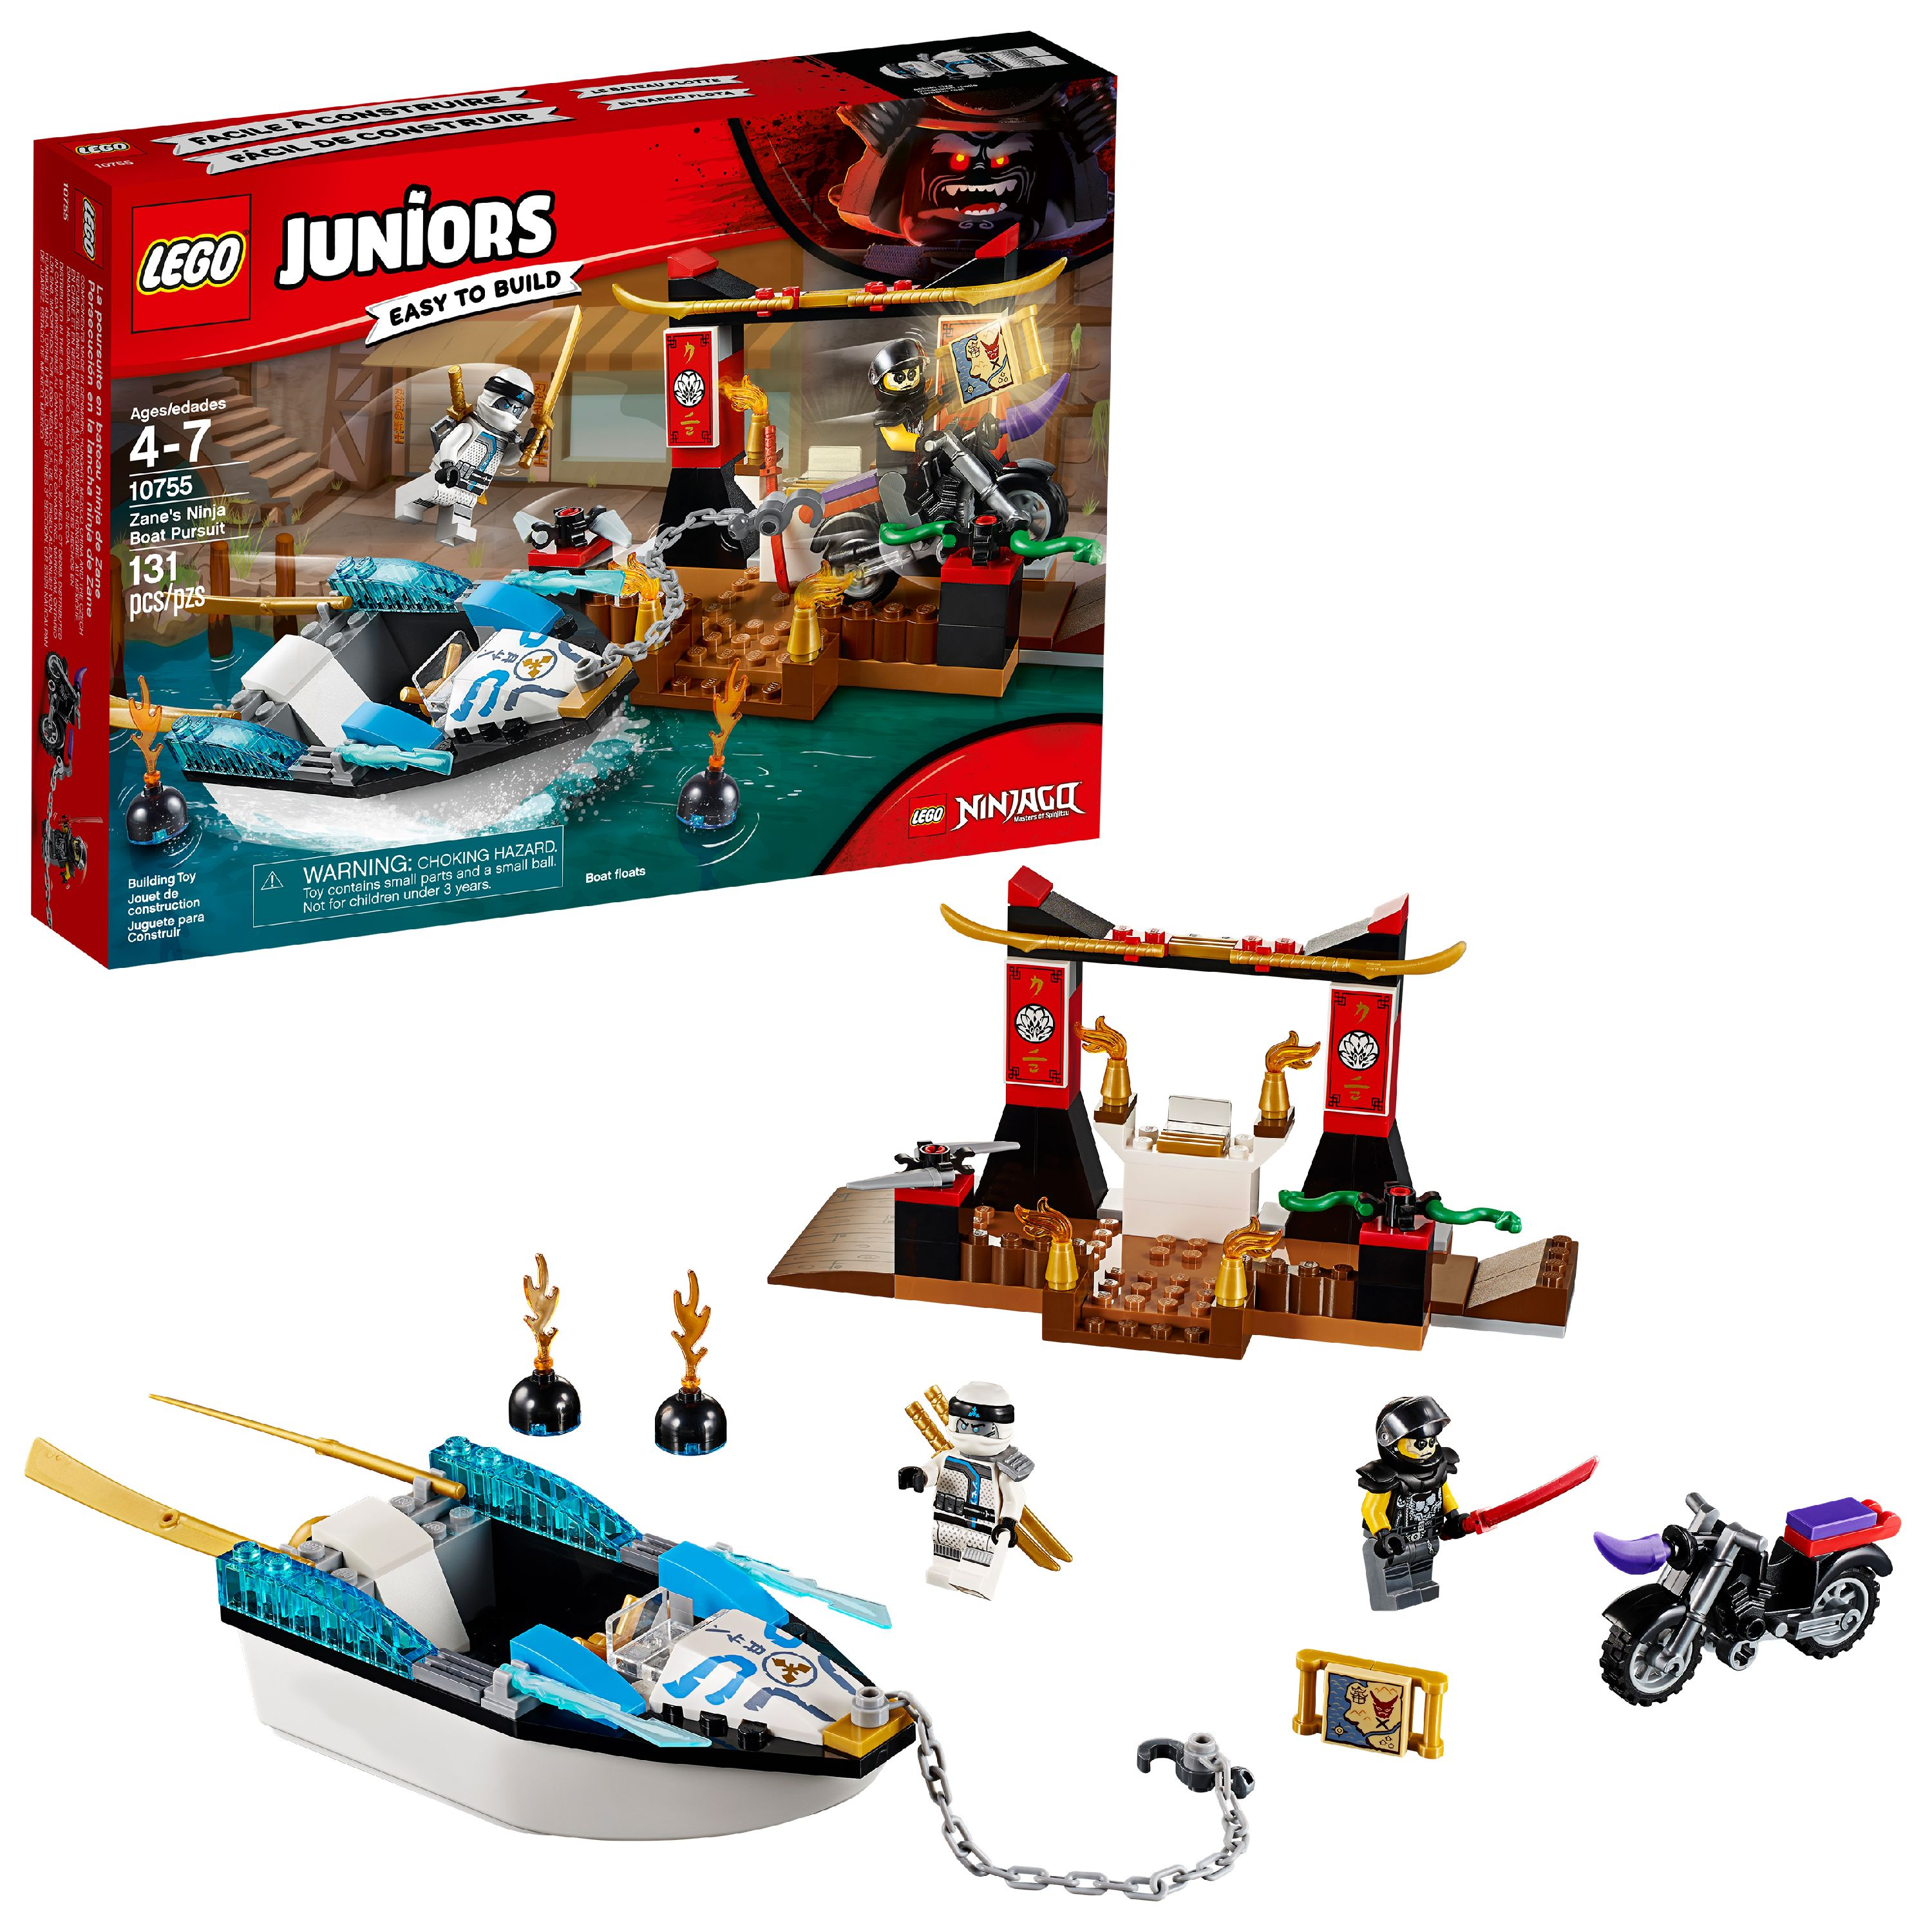 LEGO Juniors Zane's Ninja Boat Pursuit 10755 (131 Pieces)